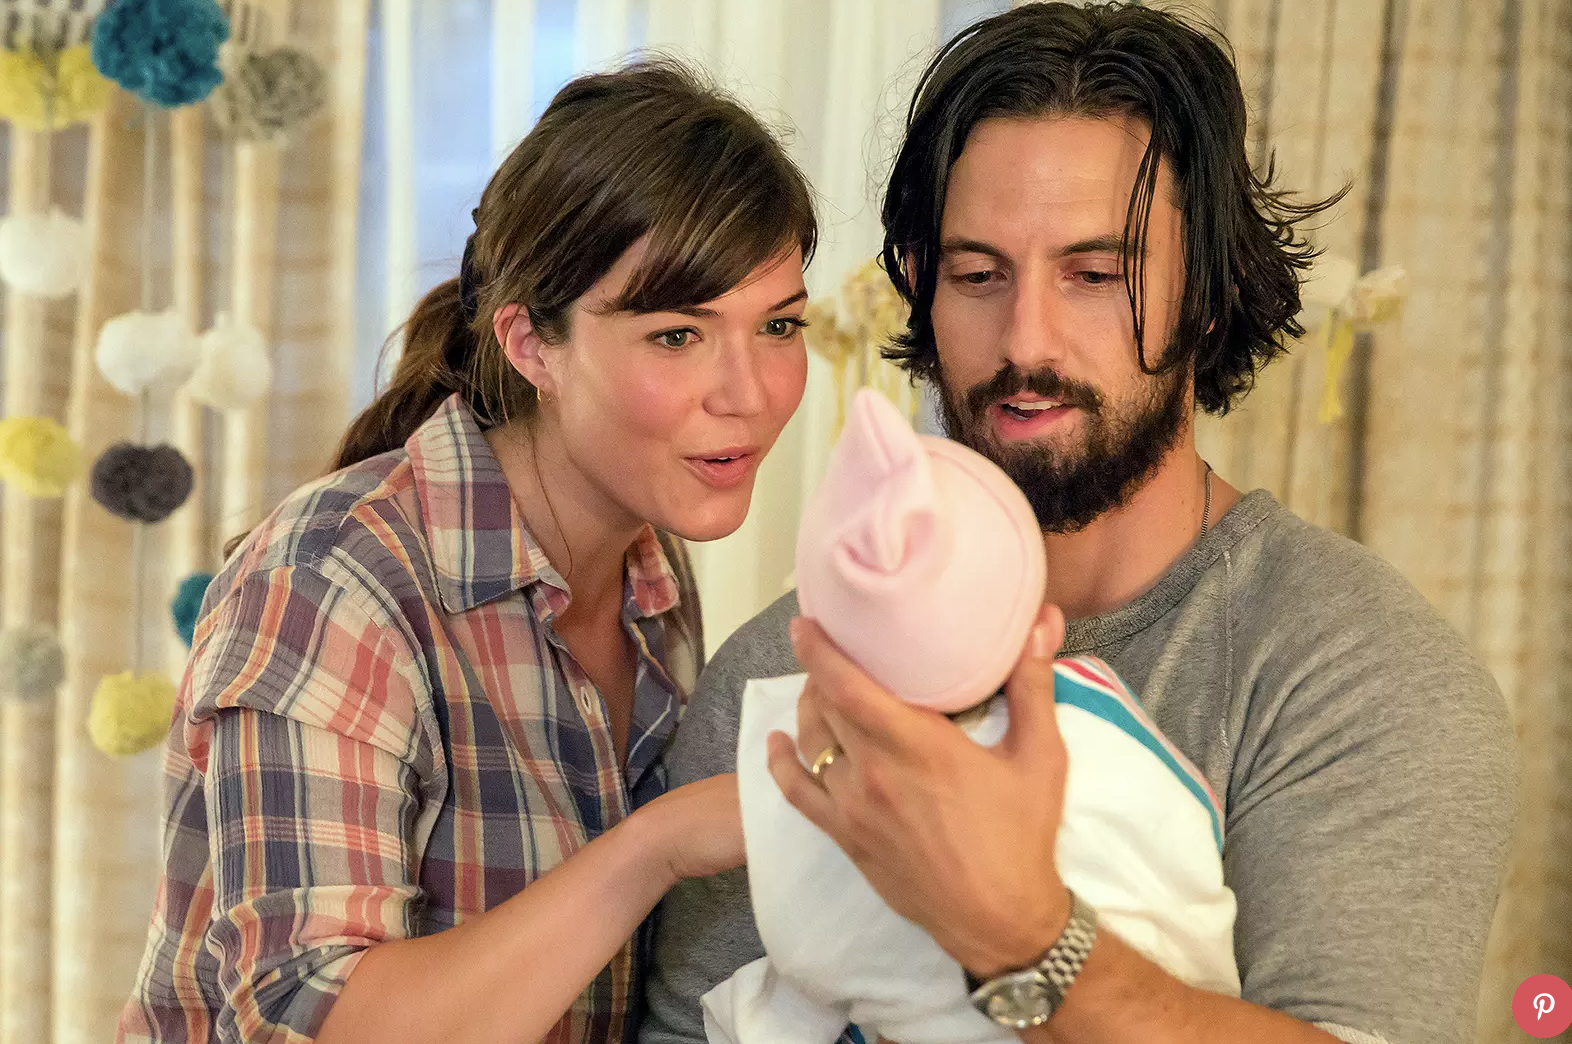 This is how I assumed Michelle and Luke looked when they got to see their baby...they looked exactly like Mandy Moore and Milo Ventimiglia in the show This is Us.